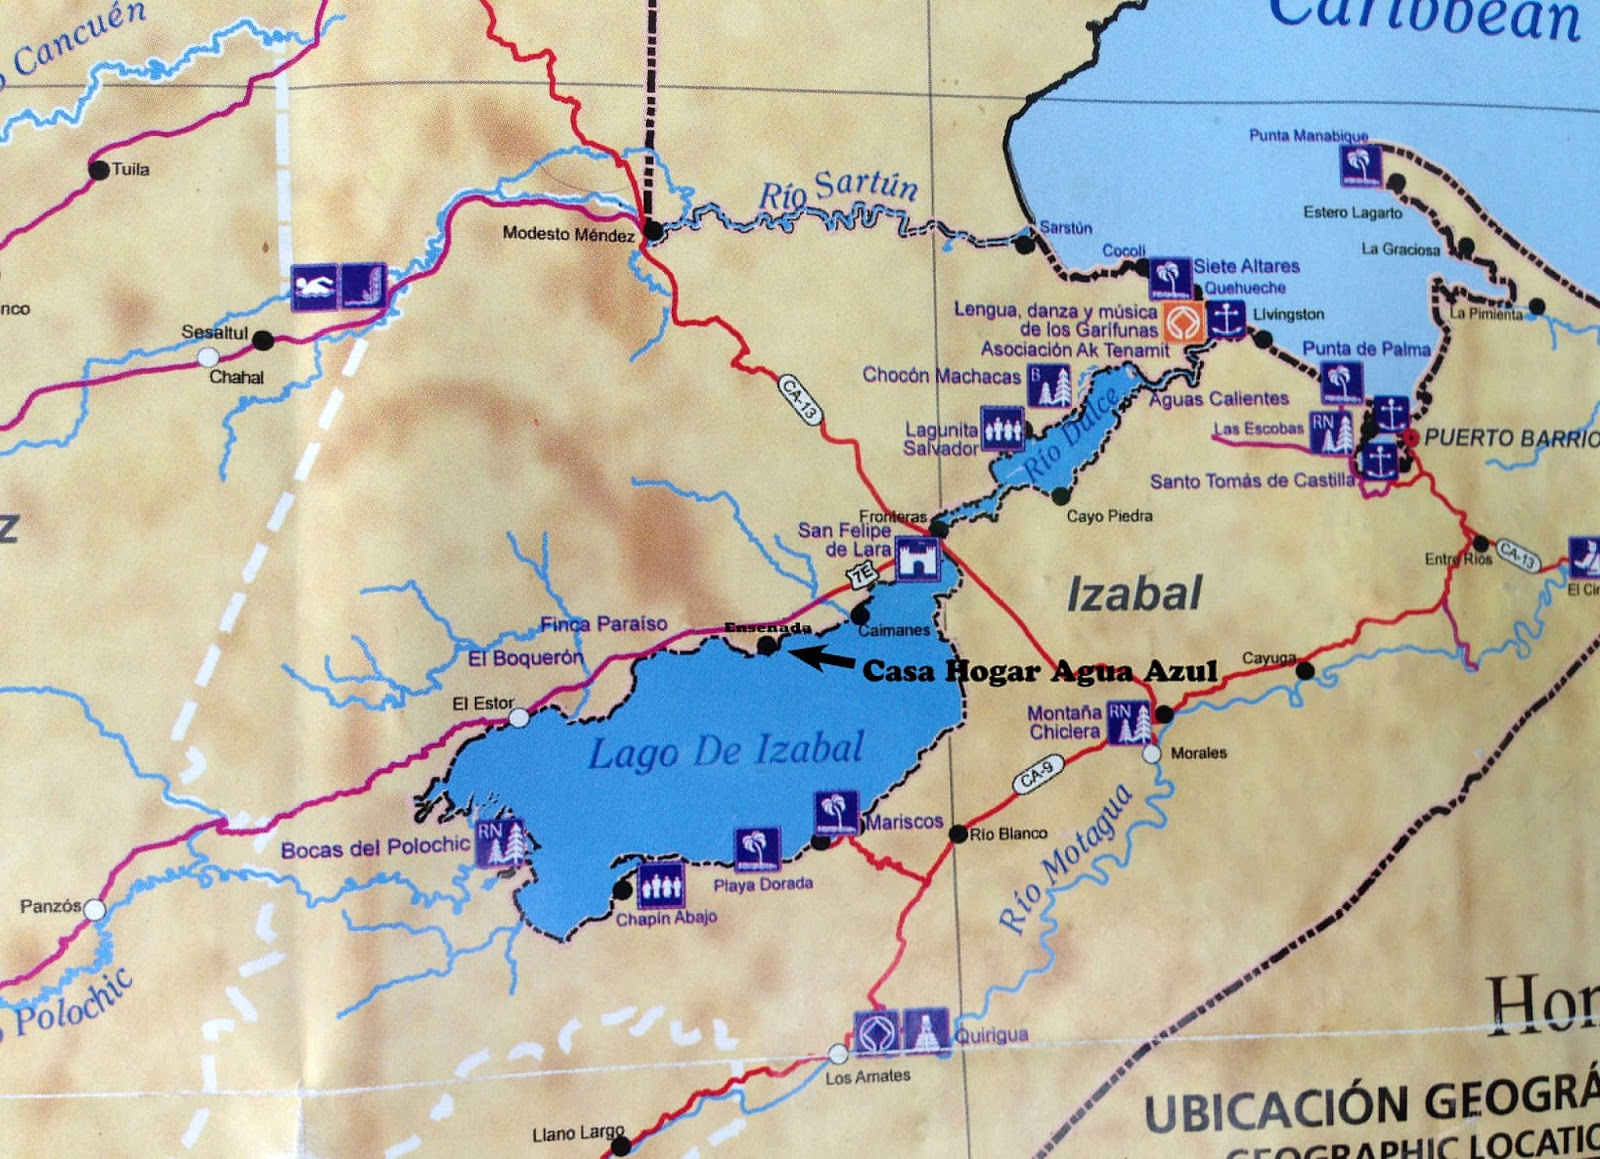 livingston is the entry point to the rio dulce where the rio meets the caribbean on the map rio dulce is written on what is actually el golfete